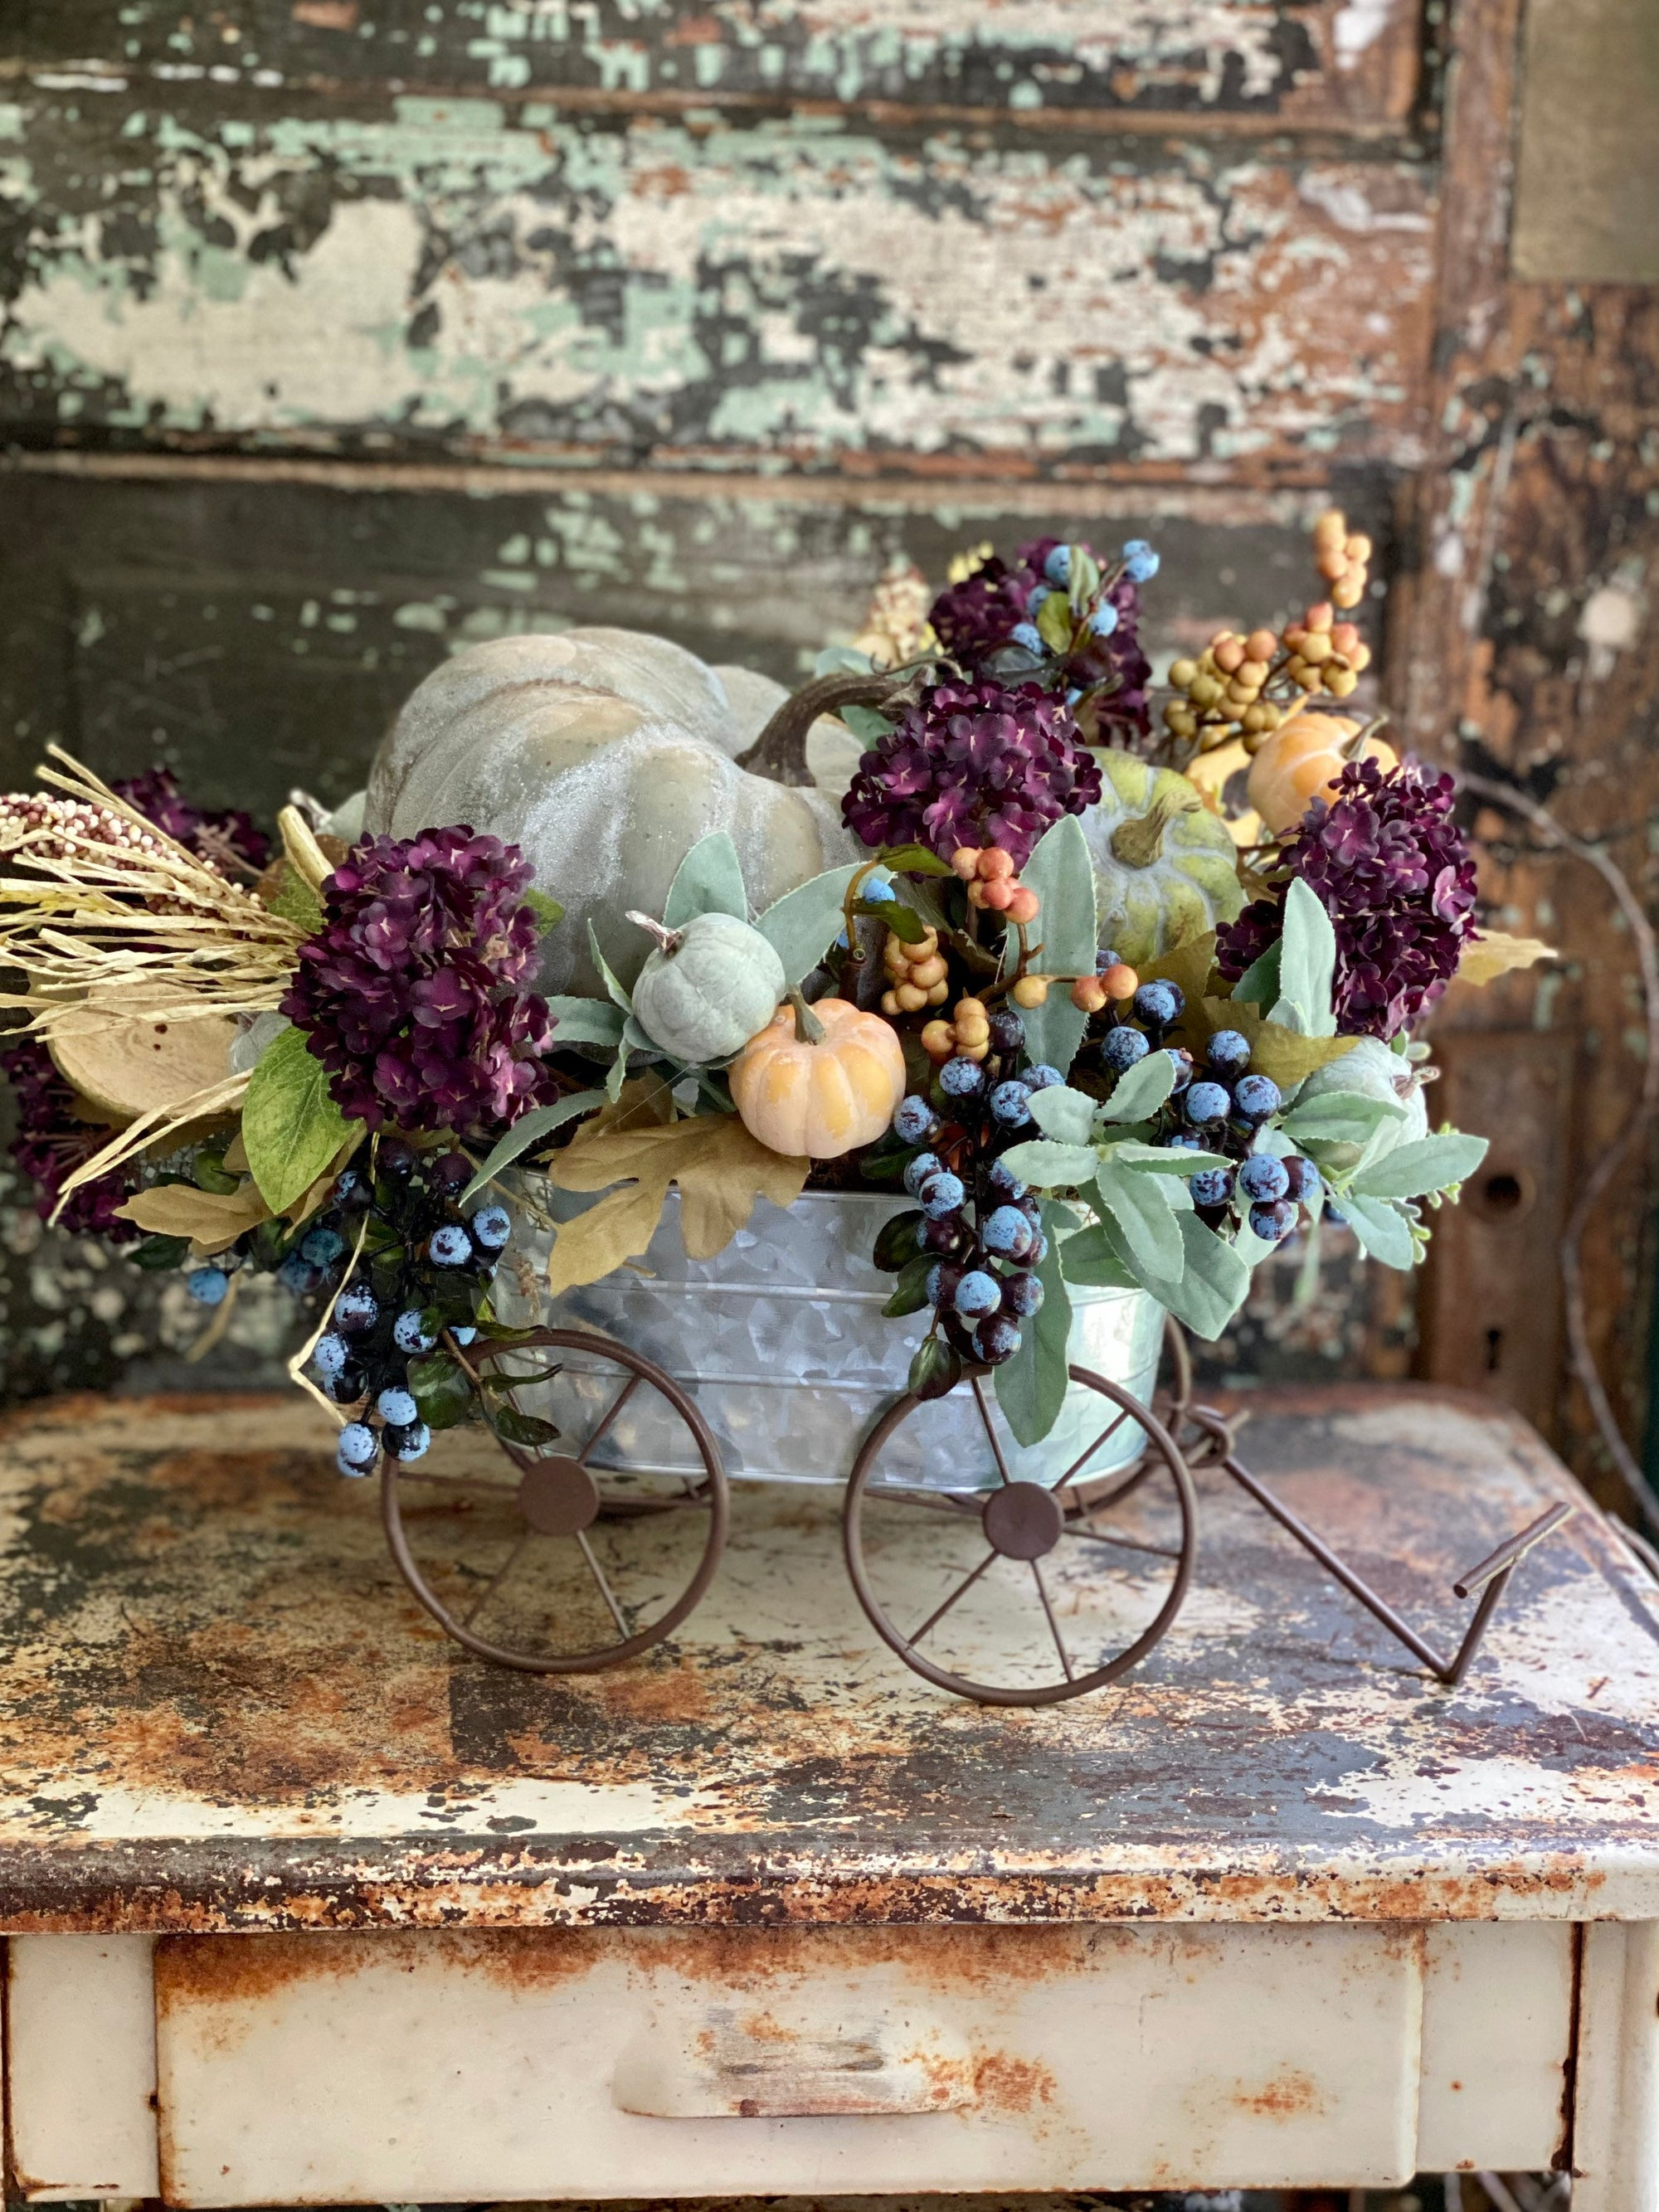 The Jewell Fall Wagon Centerpiece For Table, Summer fall arrangement, Rustic arrangement, Purple & cream autumn centerpiece